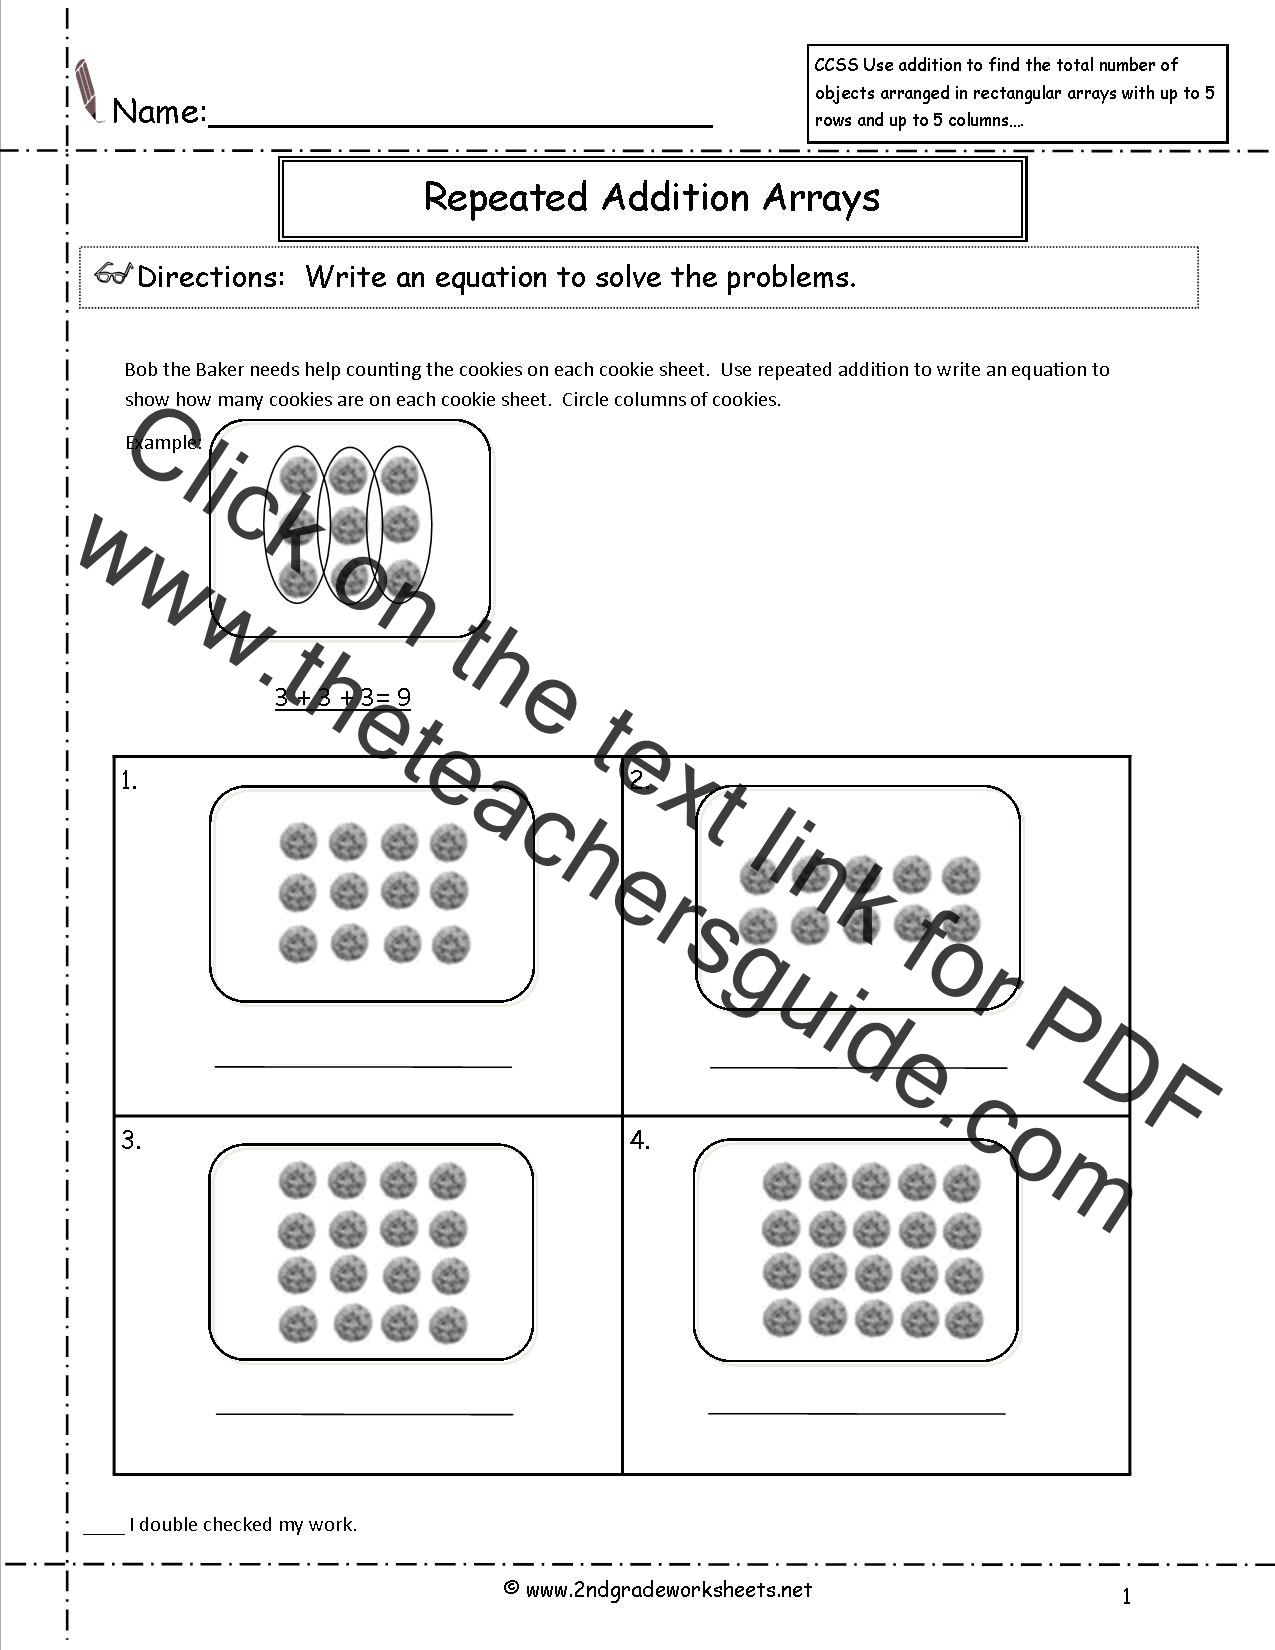 Printables Free Common Core Math Worksheets 2nd grade math common core state standards worksheets ccss 2 oa 4 worksheets